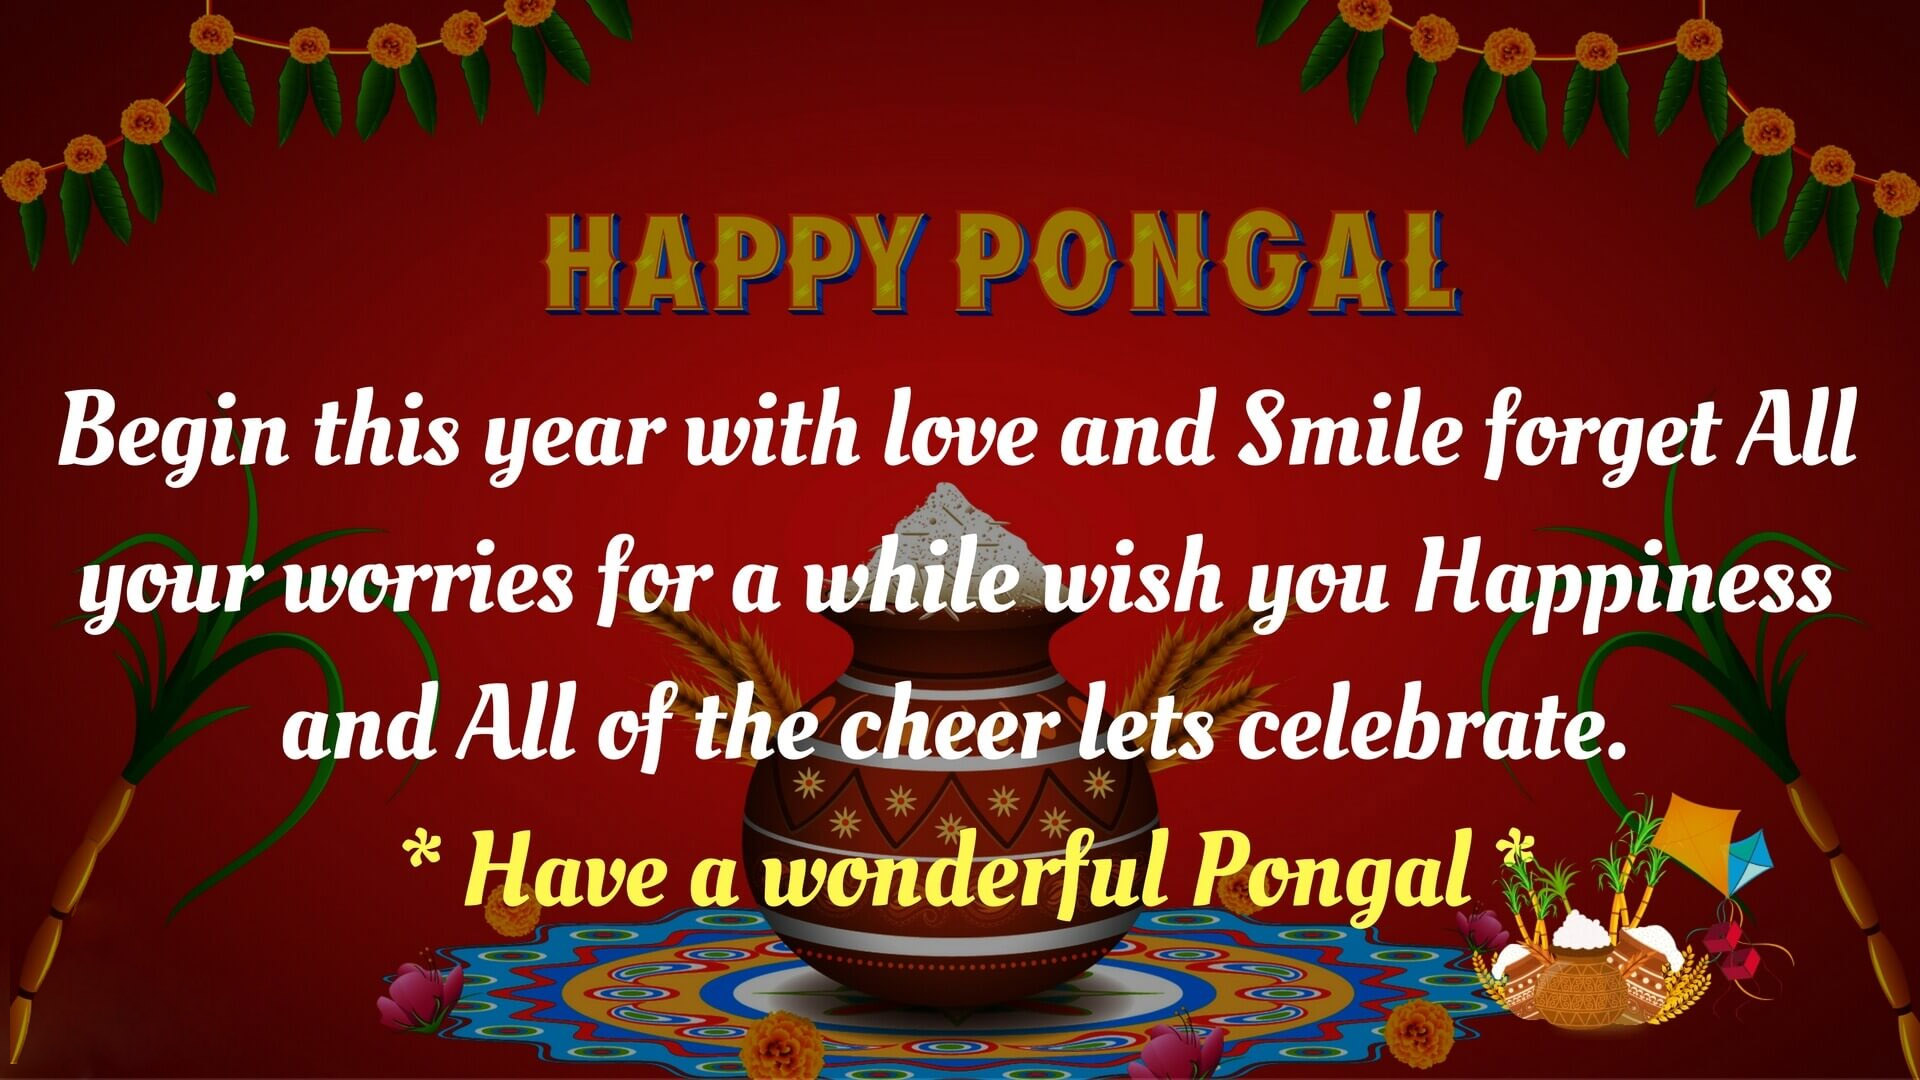 Happy Pongal Festival Wishes Images Photos Picture Hd Wallpapers 1080